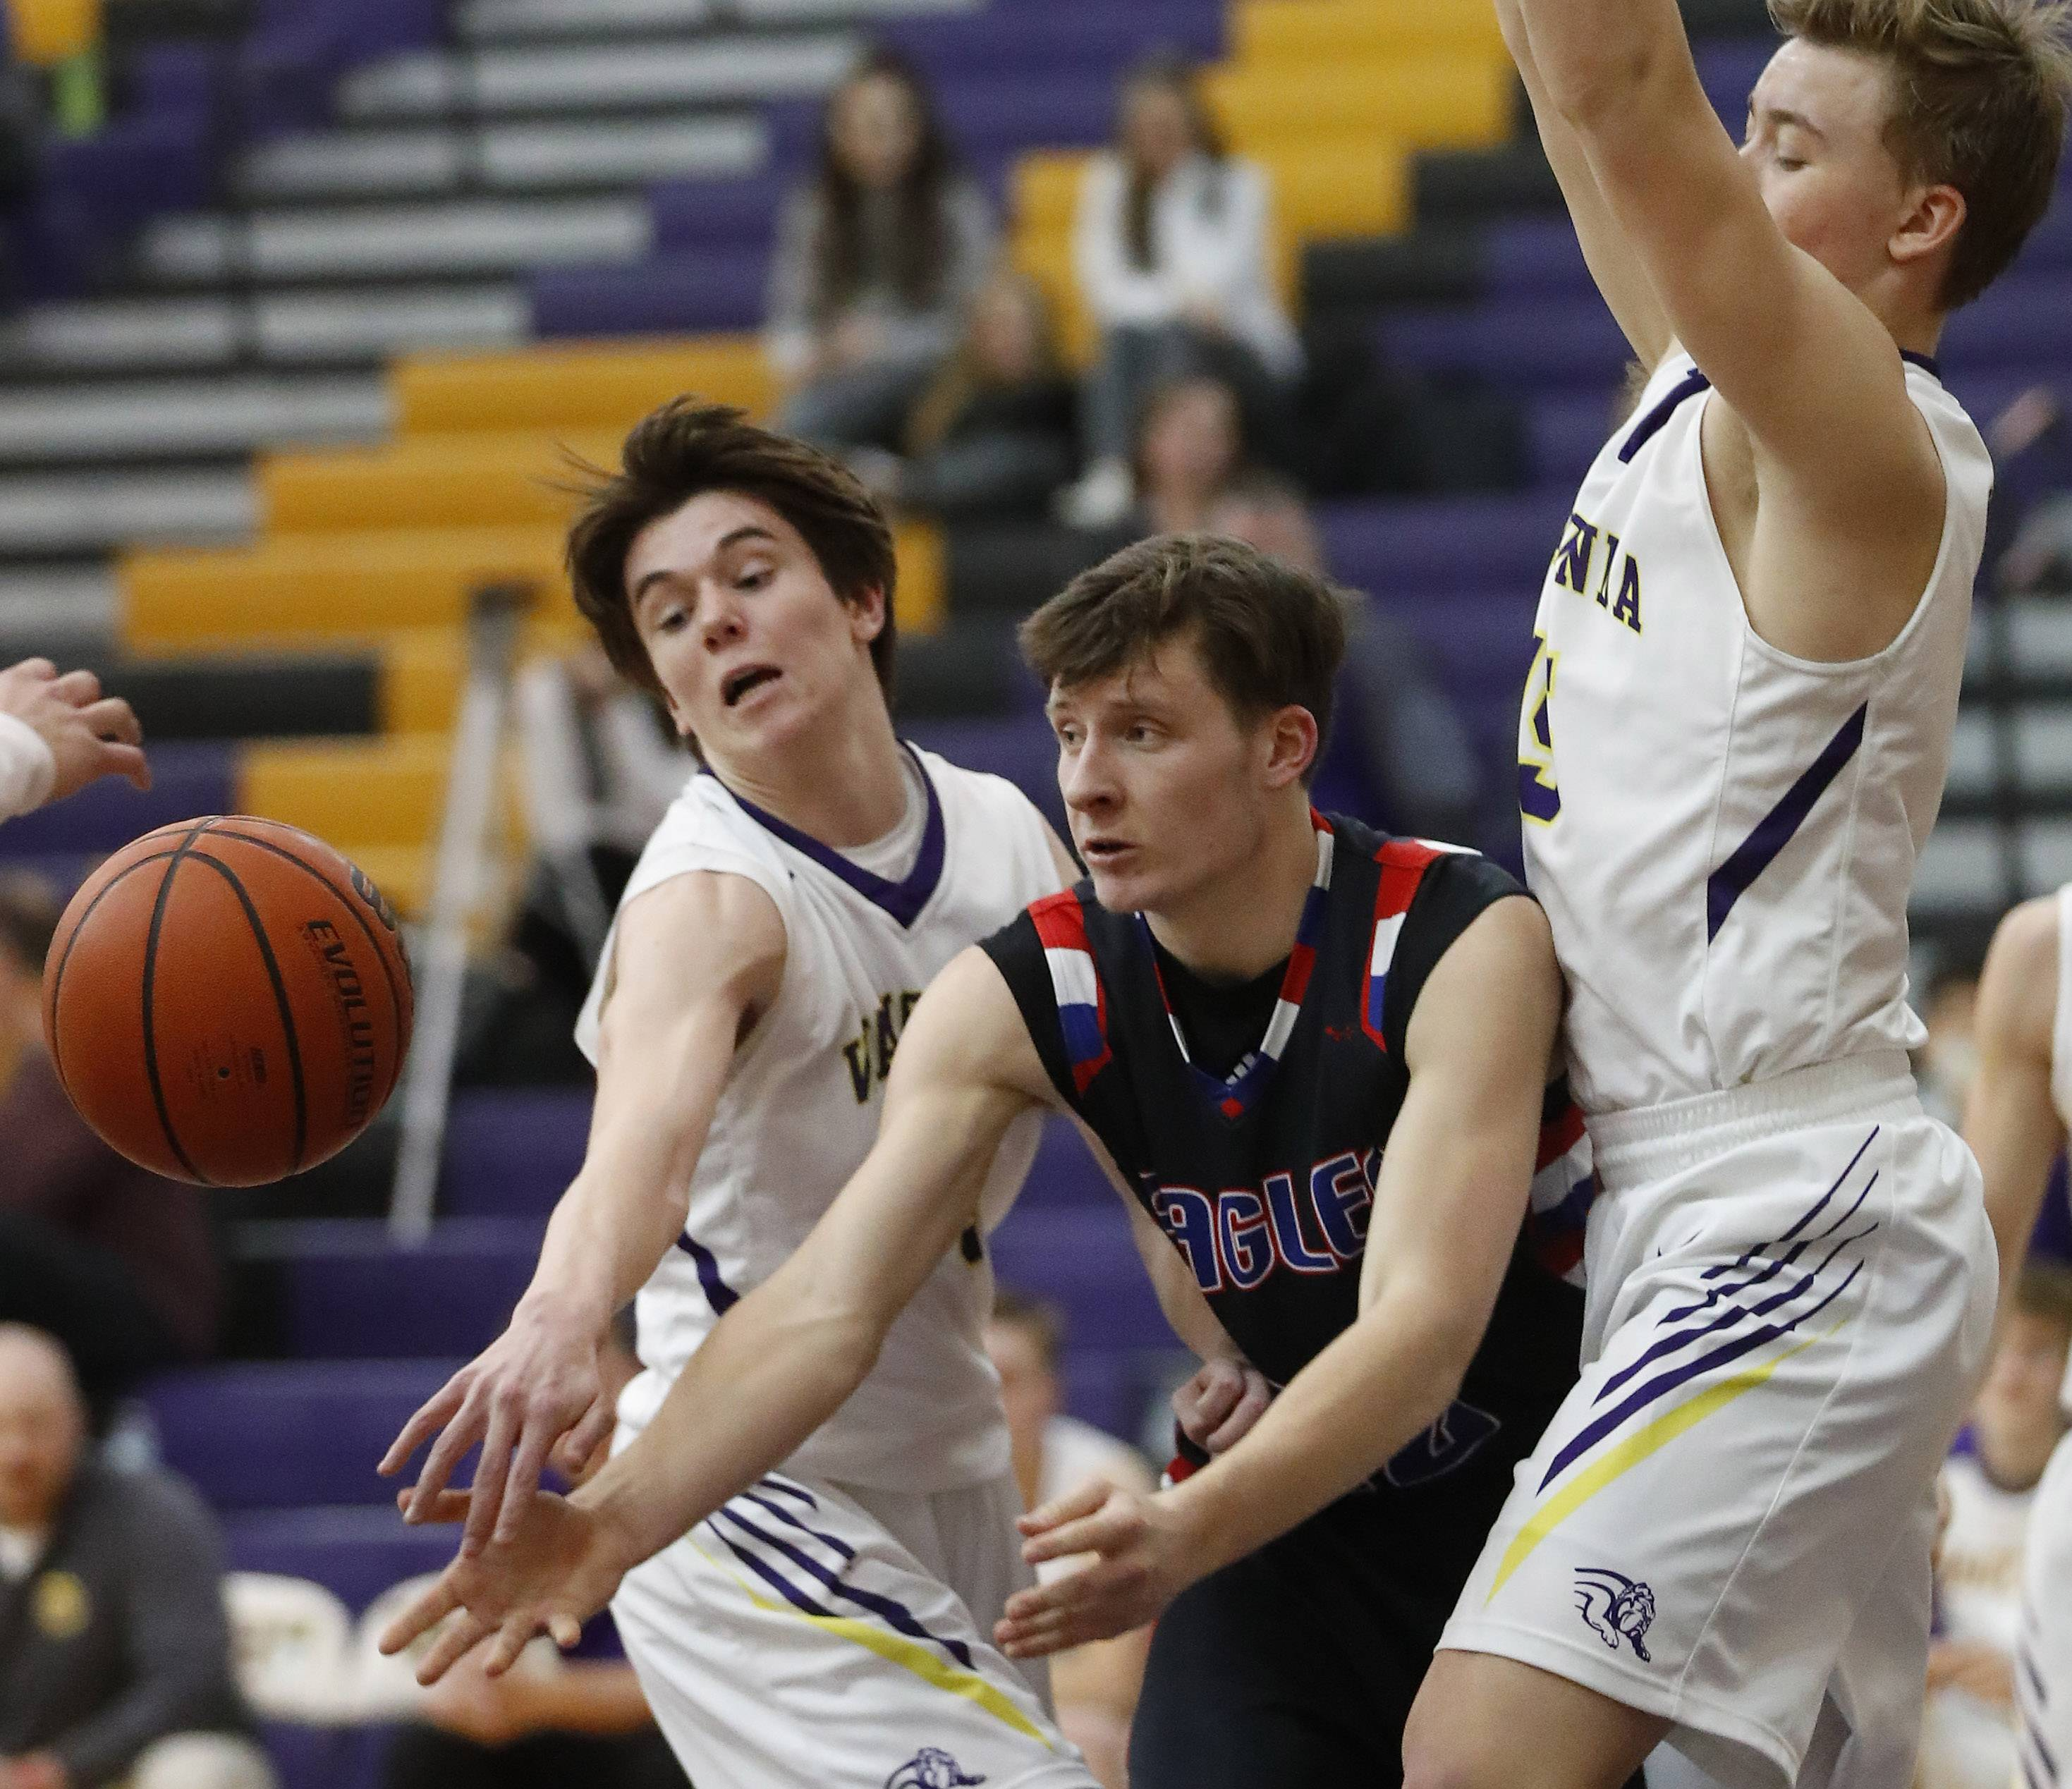 Lakes' Logan McCann, middle, passes the ball as Wauconda's Nicholas Bulgarelli, left, and Matthew Nolan defend on Tuesday night in Wauconda.